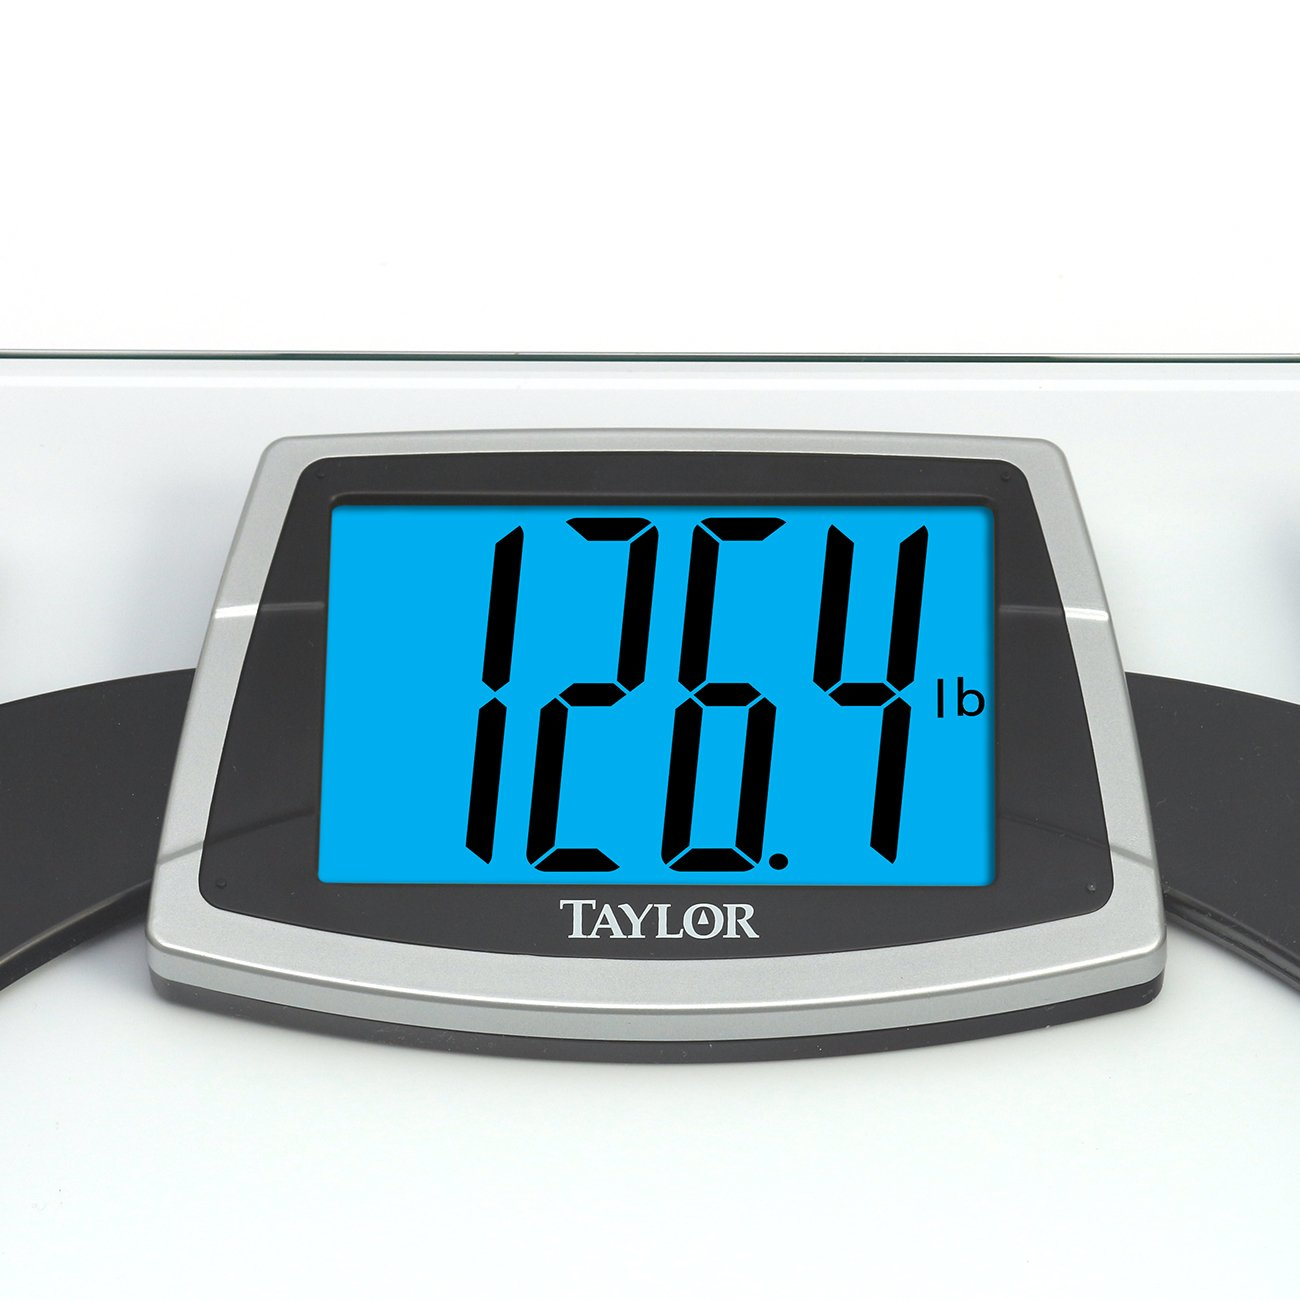 Amazon.com: Taylor Tempered Glass Scale with Huge Lighted Readout ...